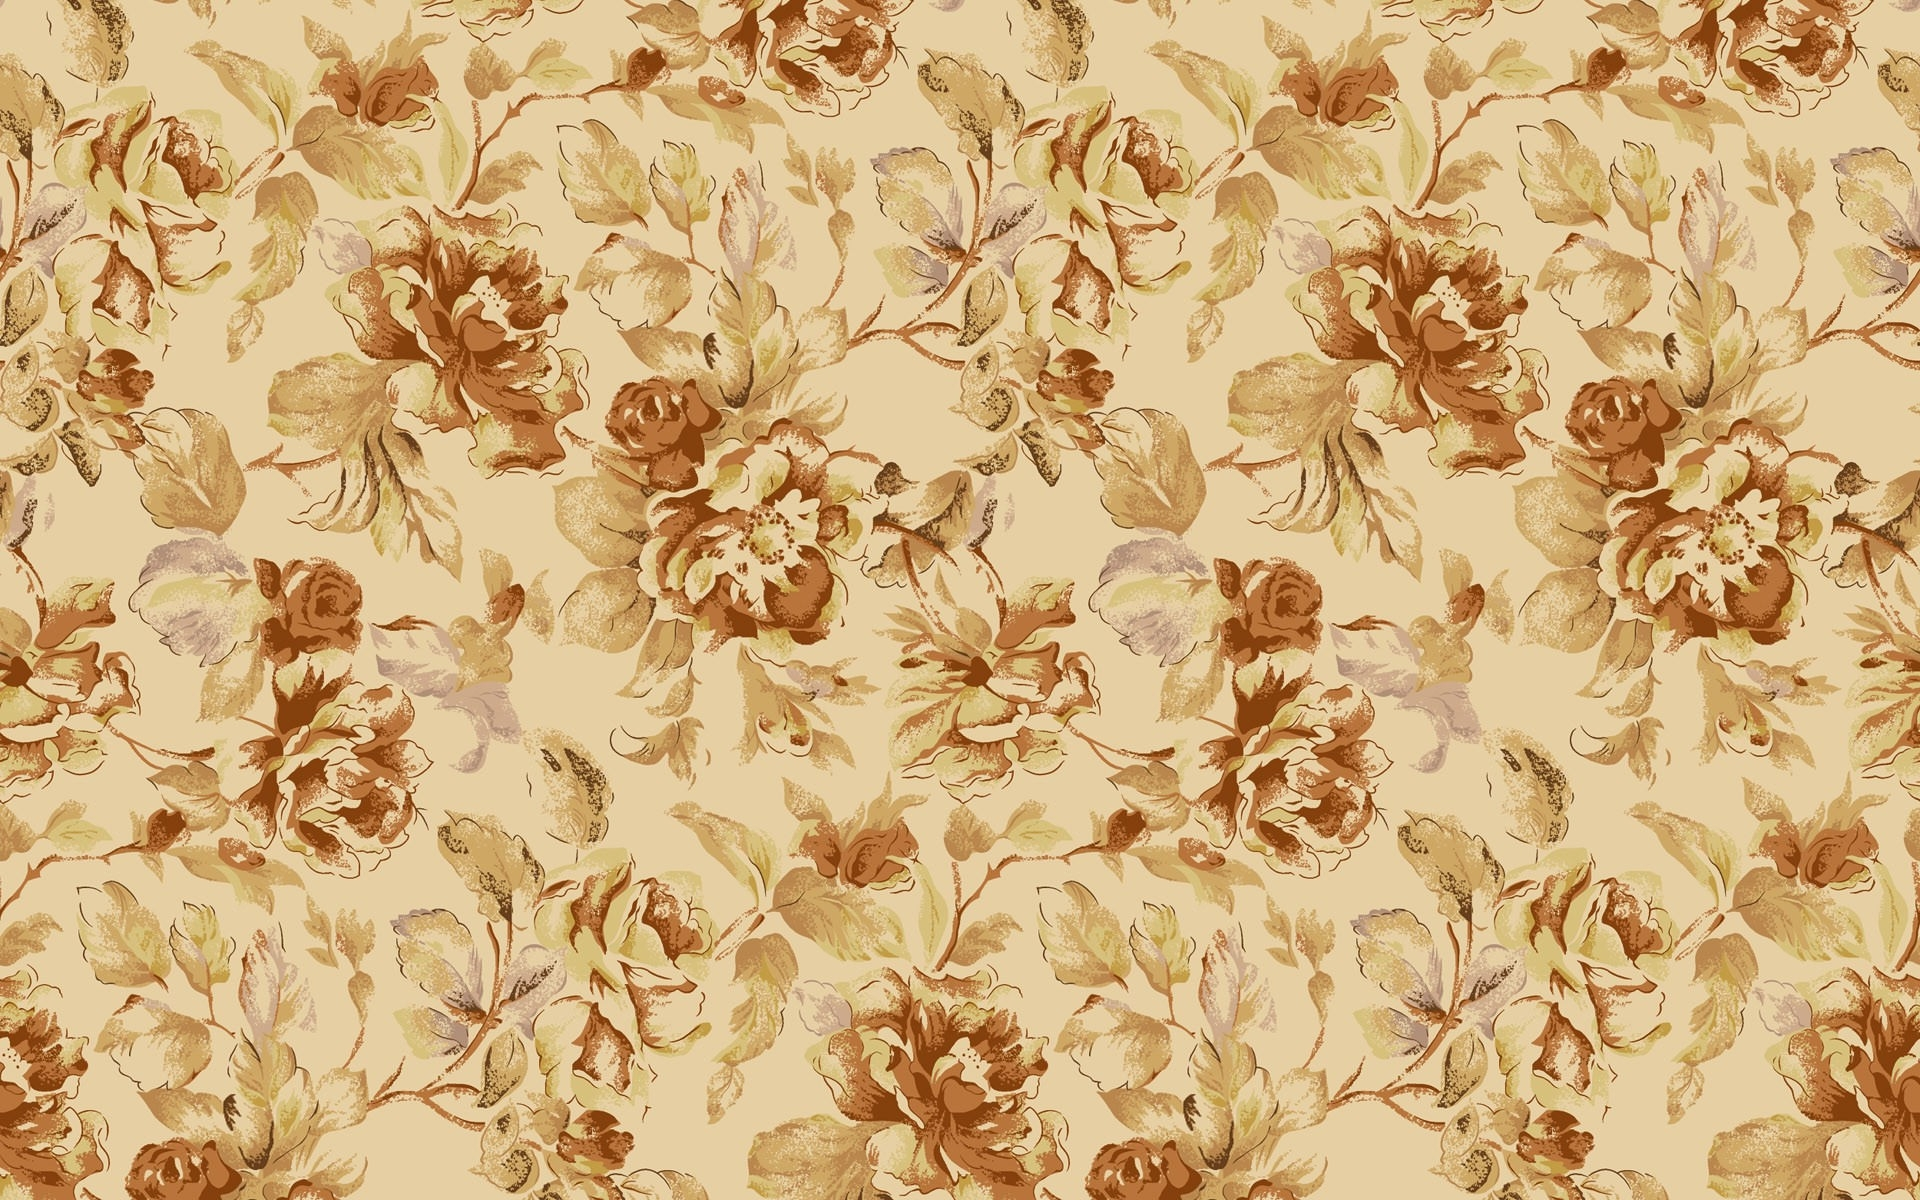 Https Www Freecreatives Com Wallpapers Vintage Floral Wallpaper Html